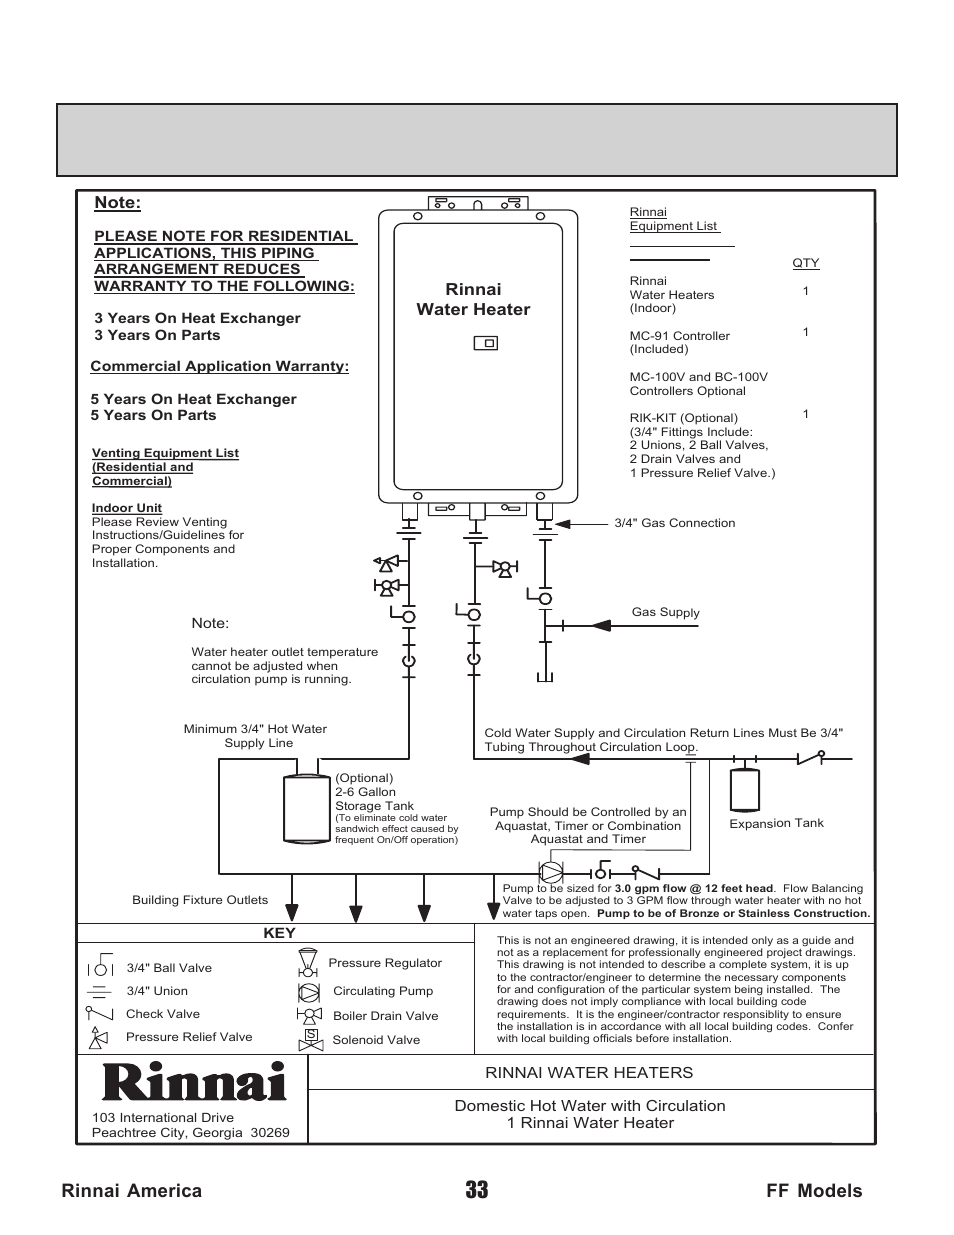 hight resolution of rinnai america ff models optional piping for circulation systems rinnai water heater reu v2520ffud user manual page 33 48